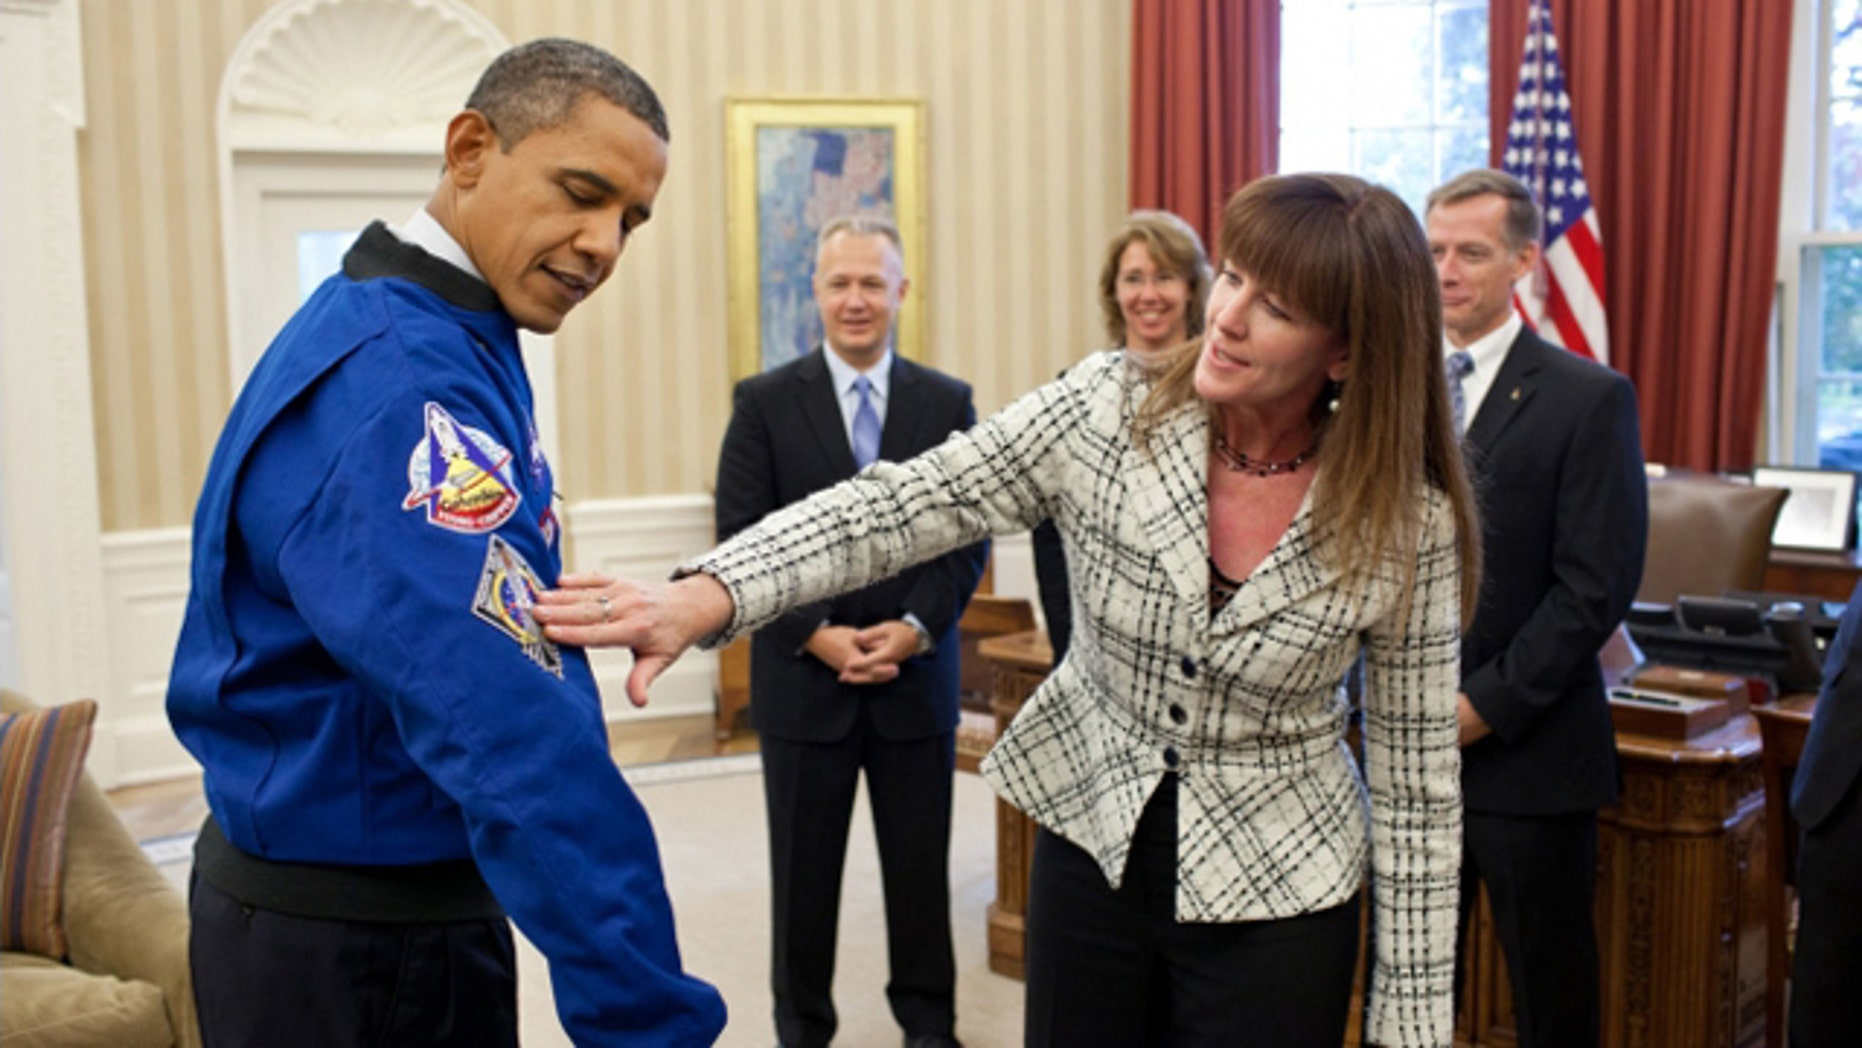 Nov. 1, 2011: Janet Kavandi, Director of Flight Crew Operations at Johnson Space Center, presents President Obama with a jacket during a drop by with the crew of the Space Shuttle Atlantis in the Oval Office.